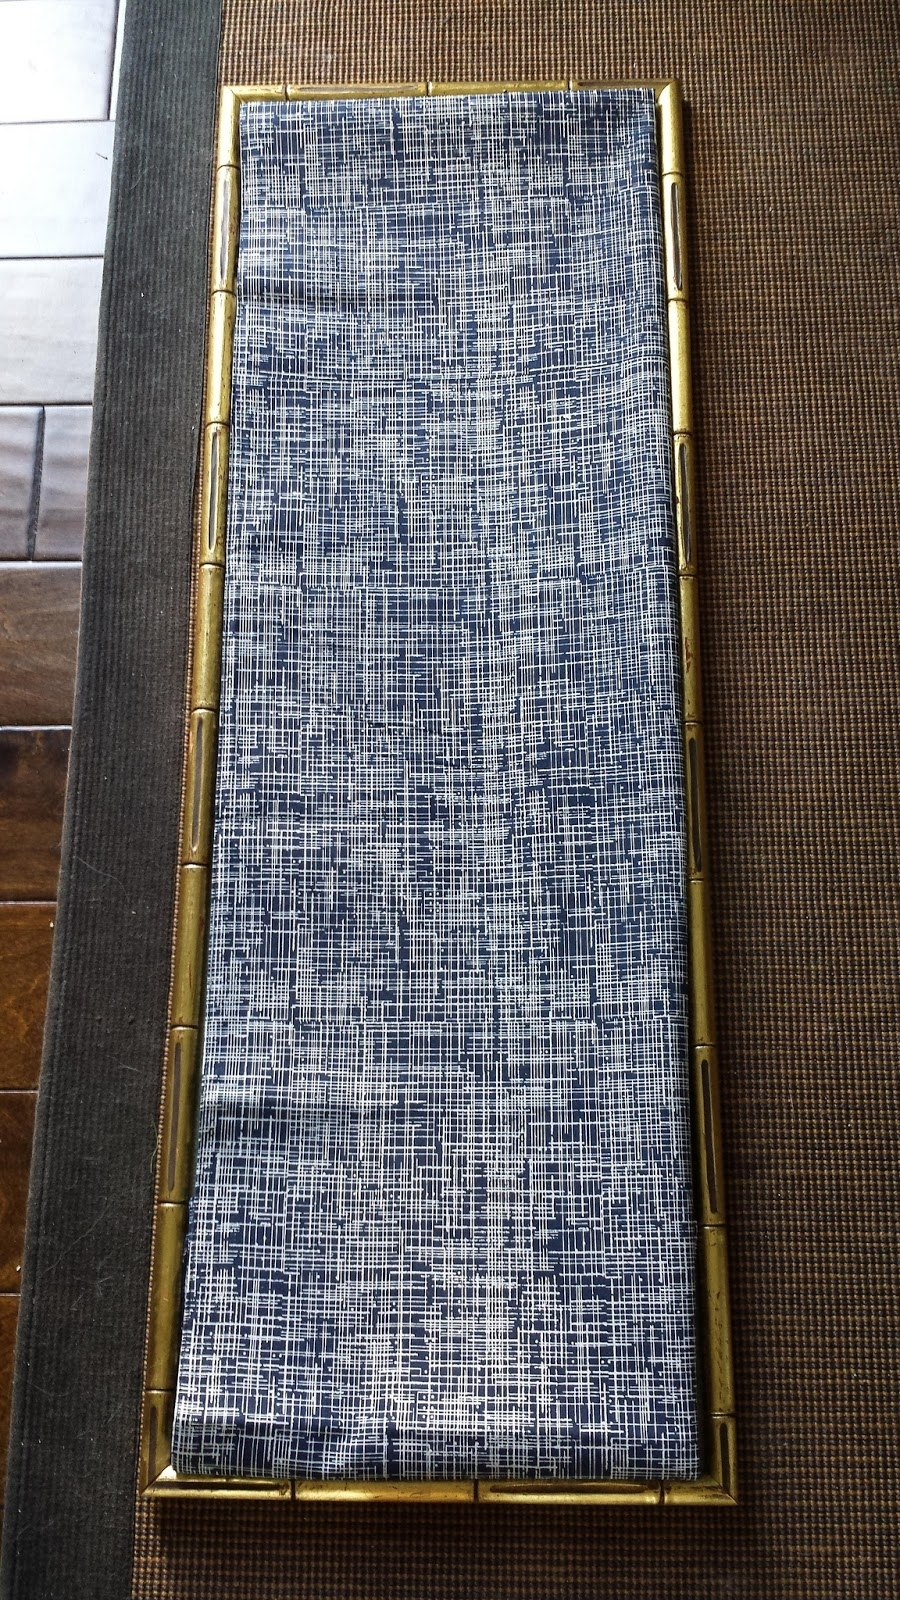 Focal Point Styling: Diy Indigo Wall Art With Framed Fabric For Best And Newest Diy Fabric Panel Wall Art (View 6 of 15)